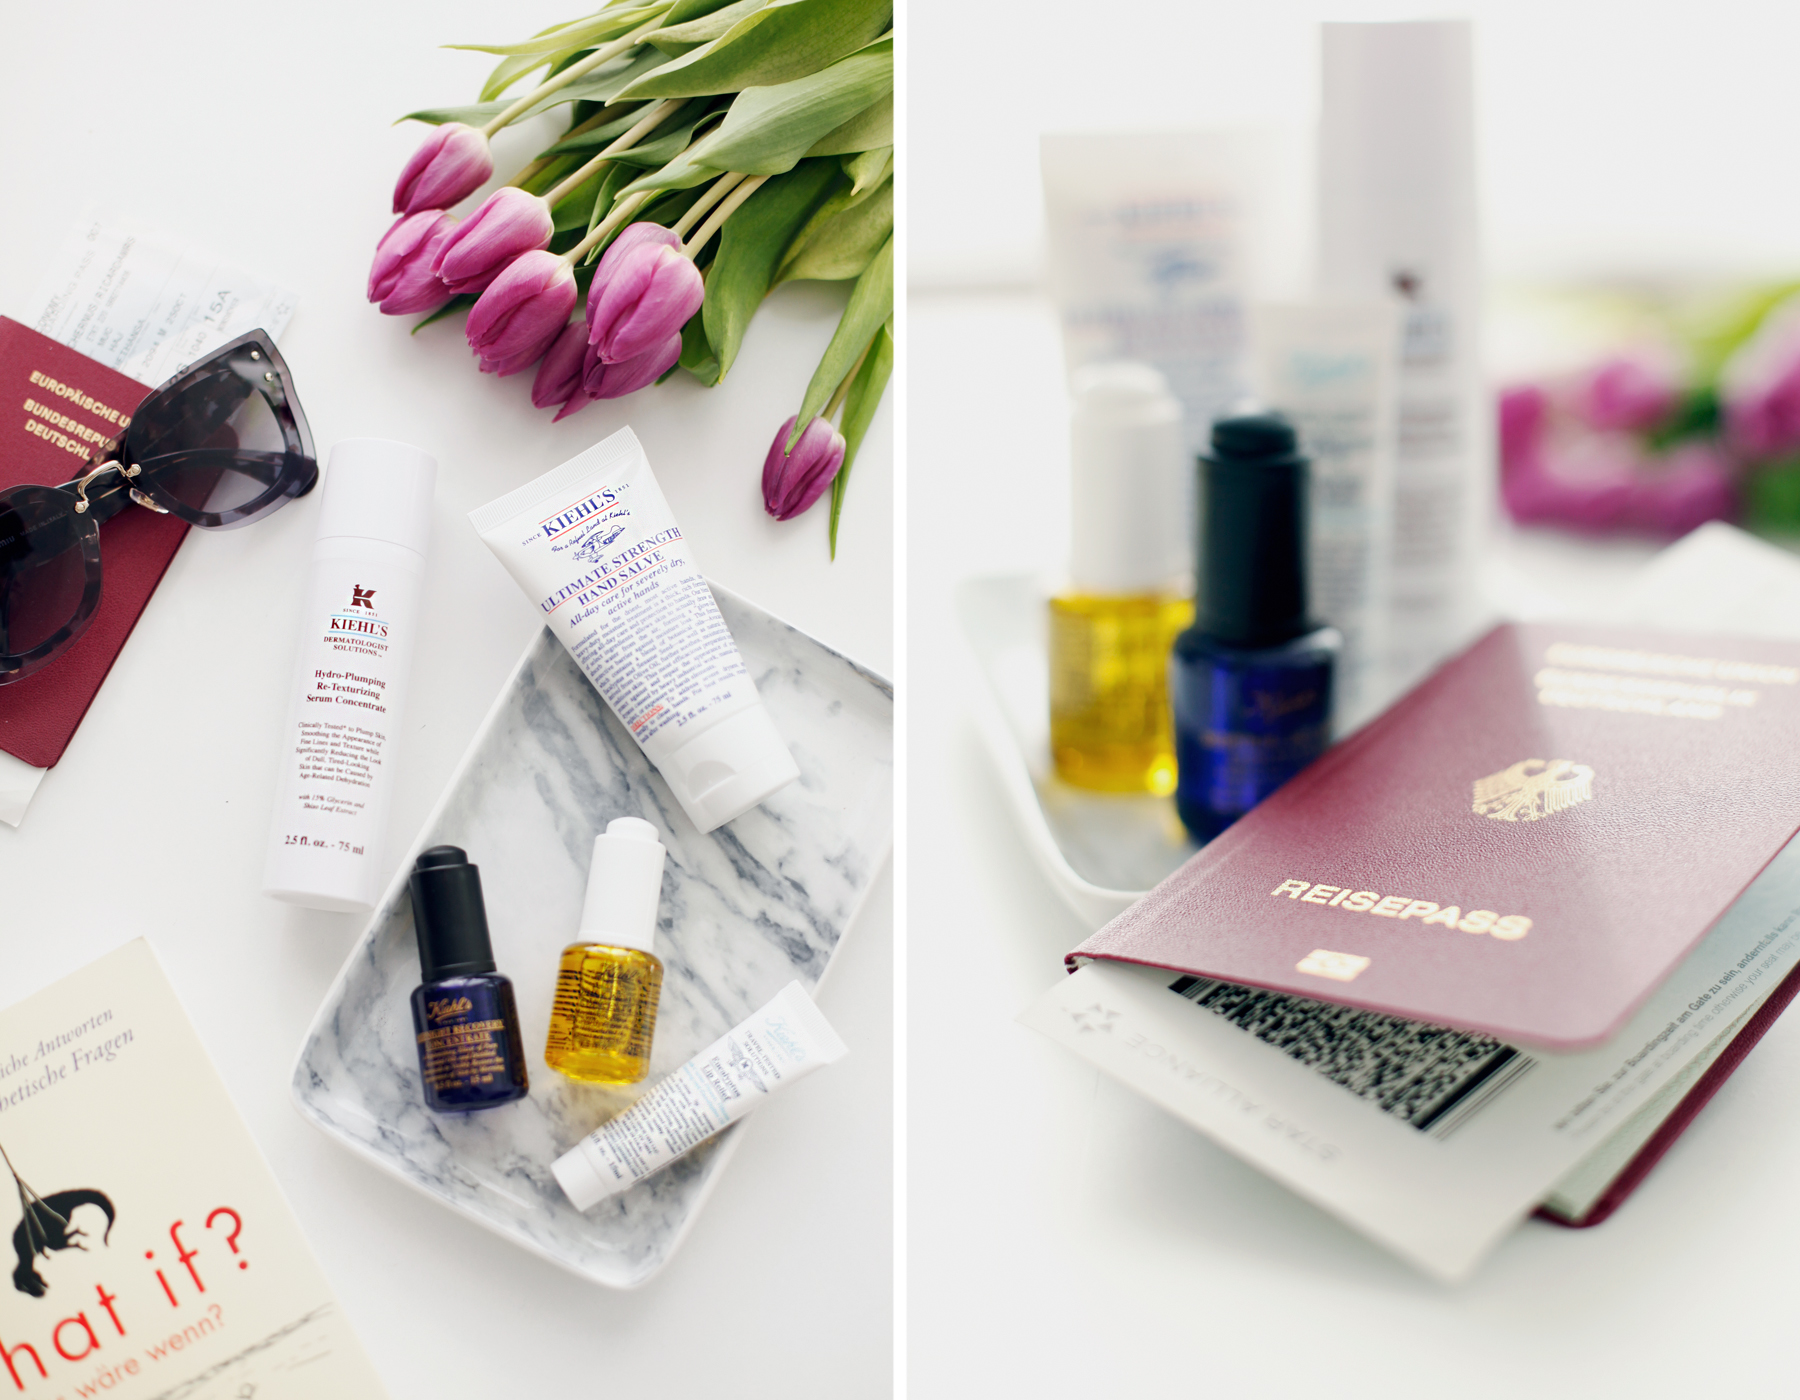 kiehl's travel essentials reise new york city world of kiehl's travelling miniature beauty beautyblogger handgepäck hand luggage sunglasses miu miu beauty tipps und tricks daily revival cats & dogs ricarda schernus beautyblogger düsseldorf 2